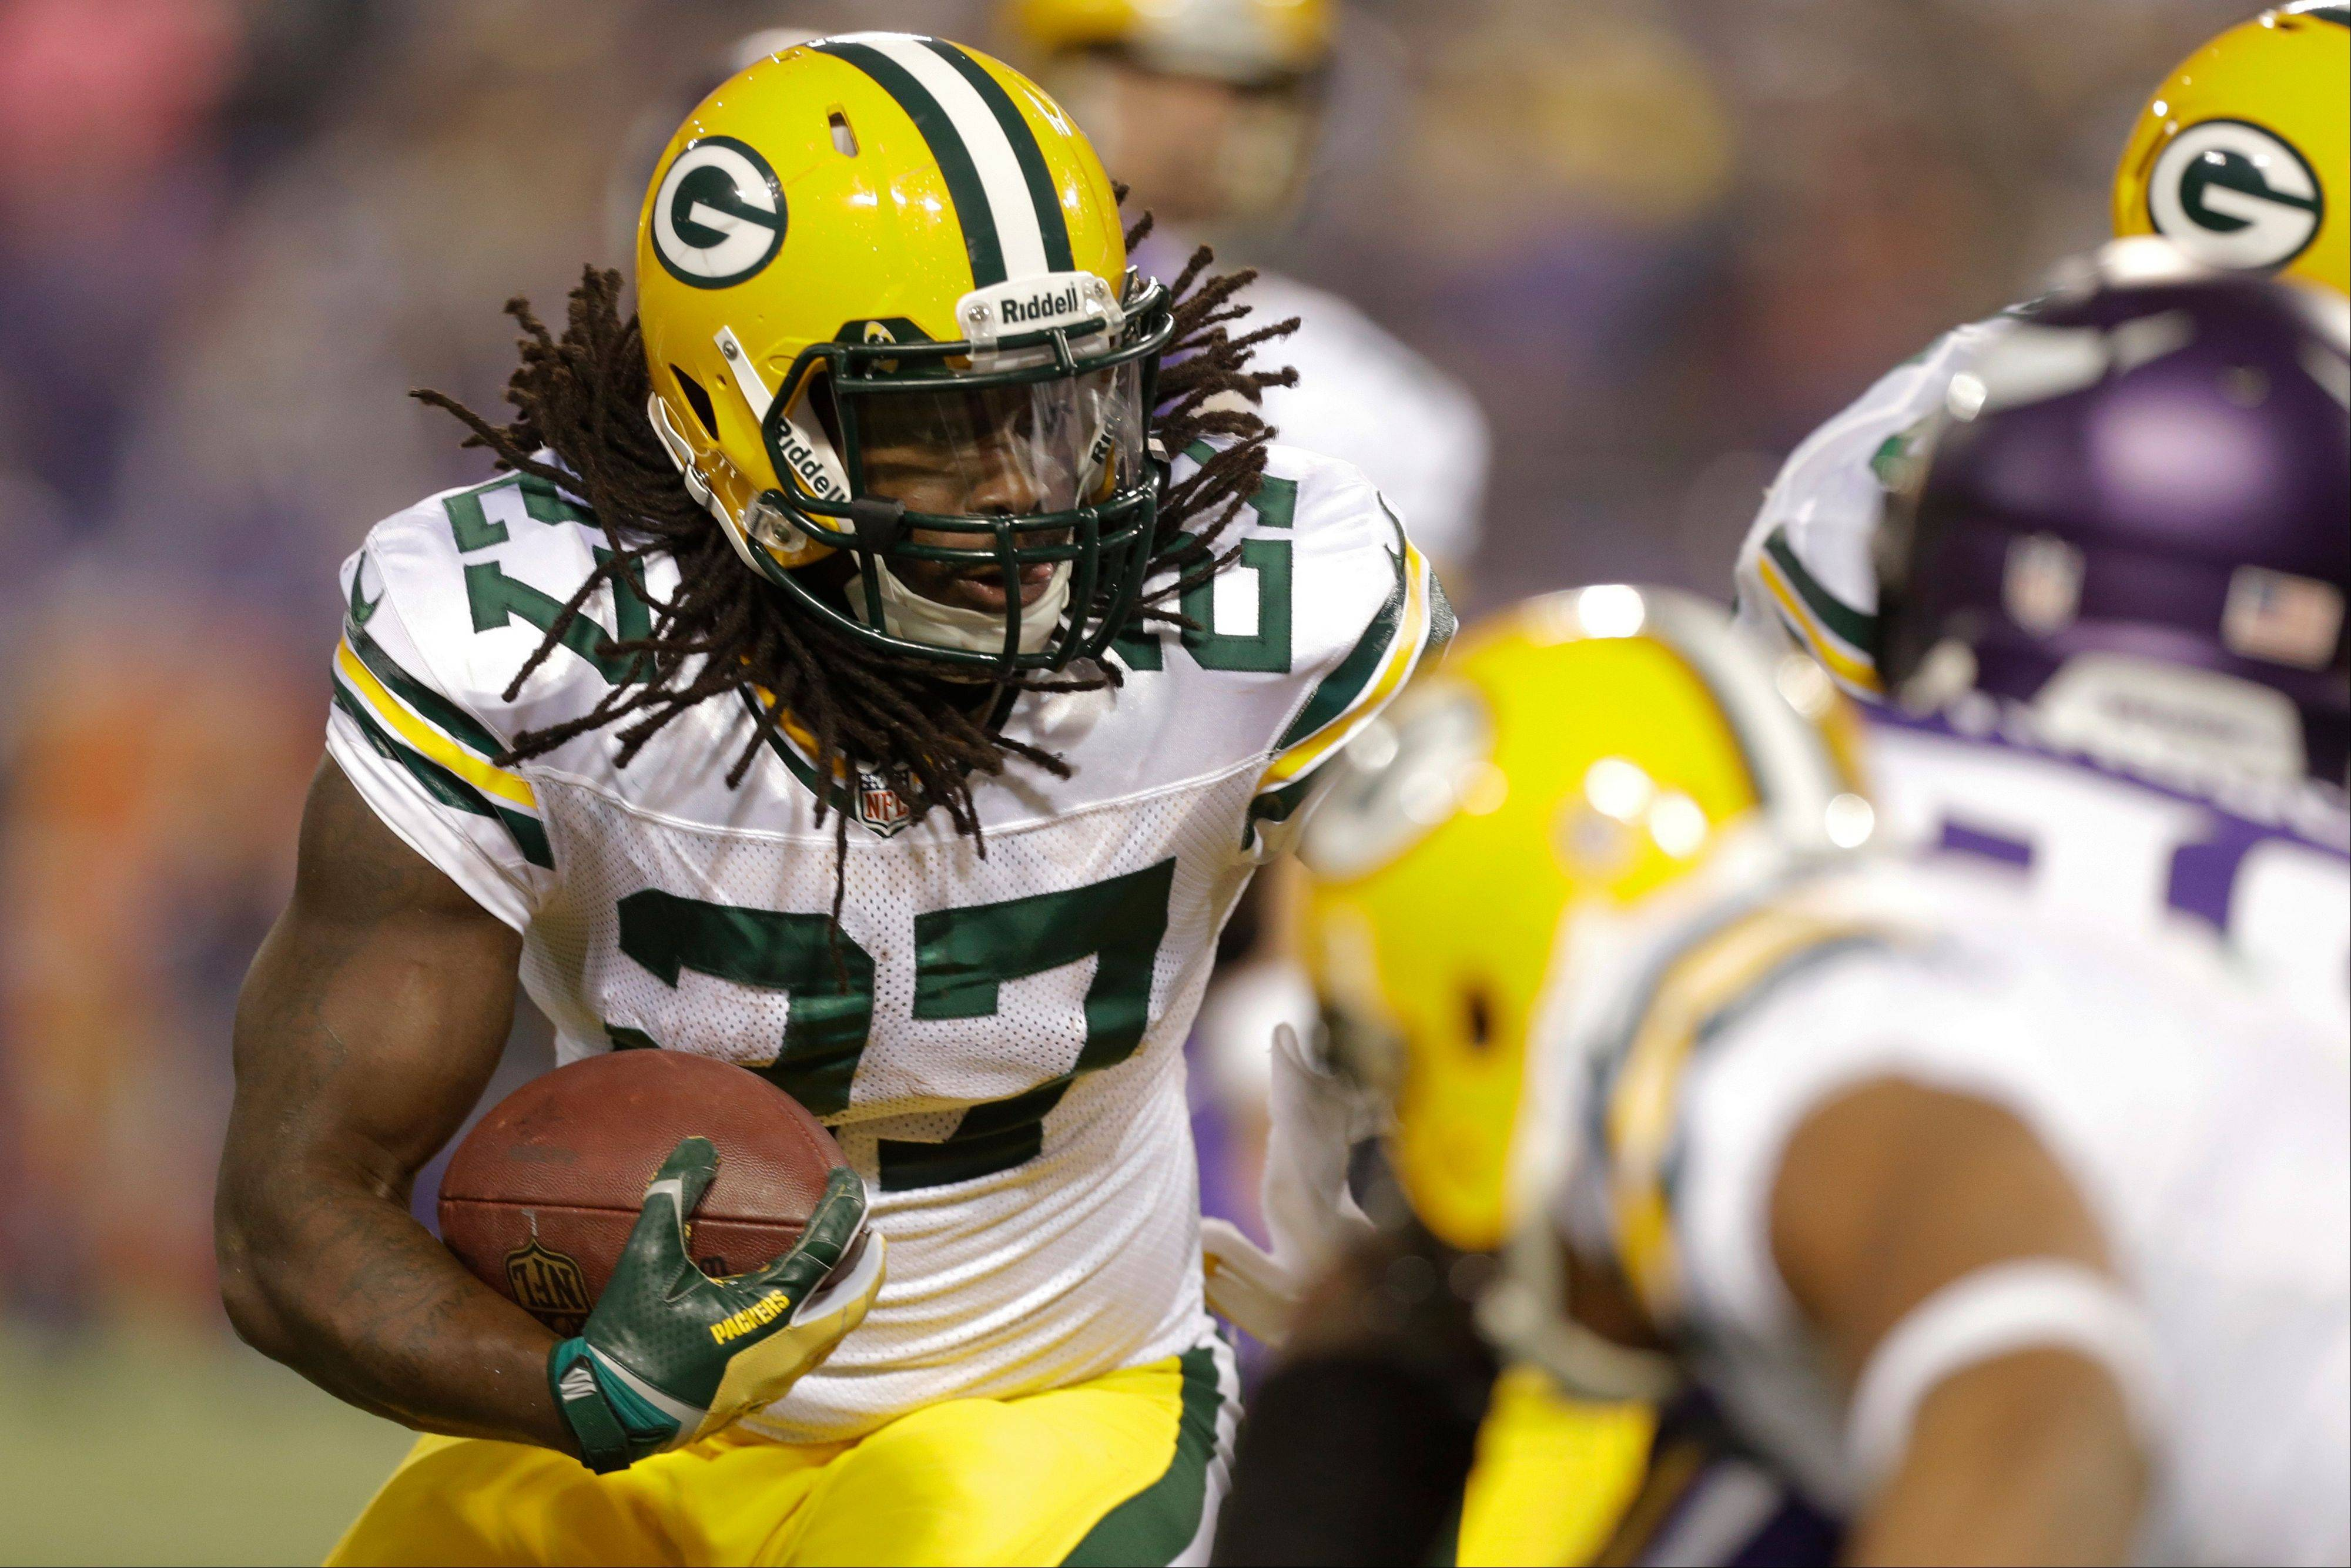 Yes, the Green Bay Packers do have a running game, especially with rookie Eddie Lacy churning up some big yardage.